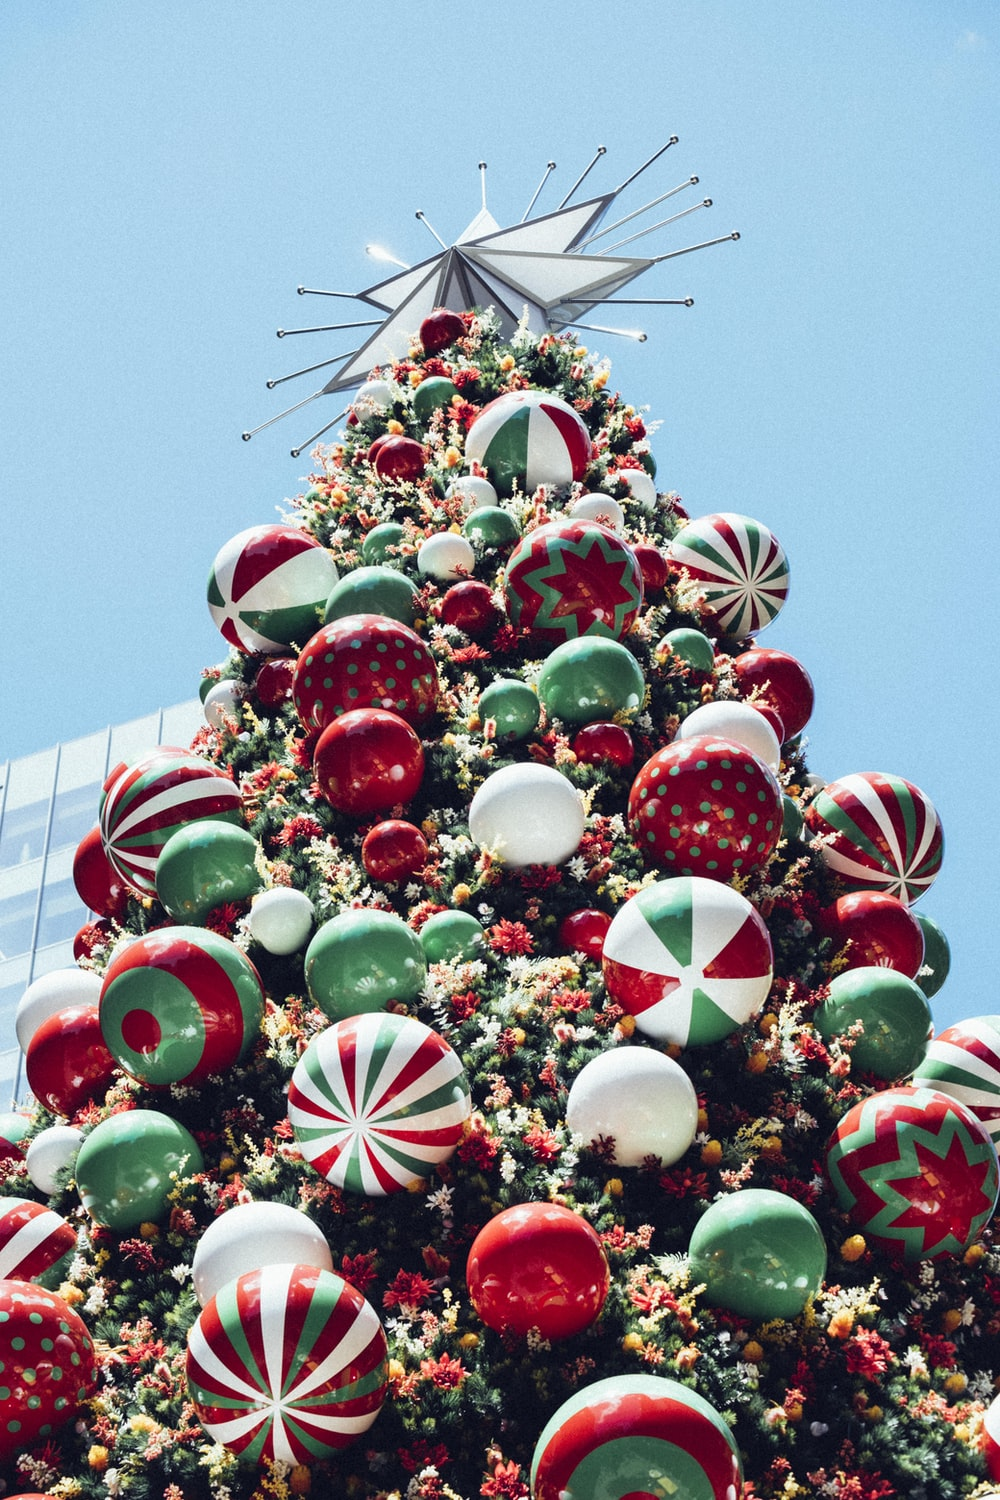 red, white, and green Christmas tree under blue sky